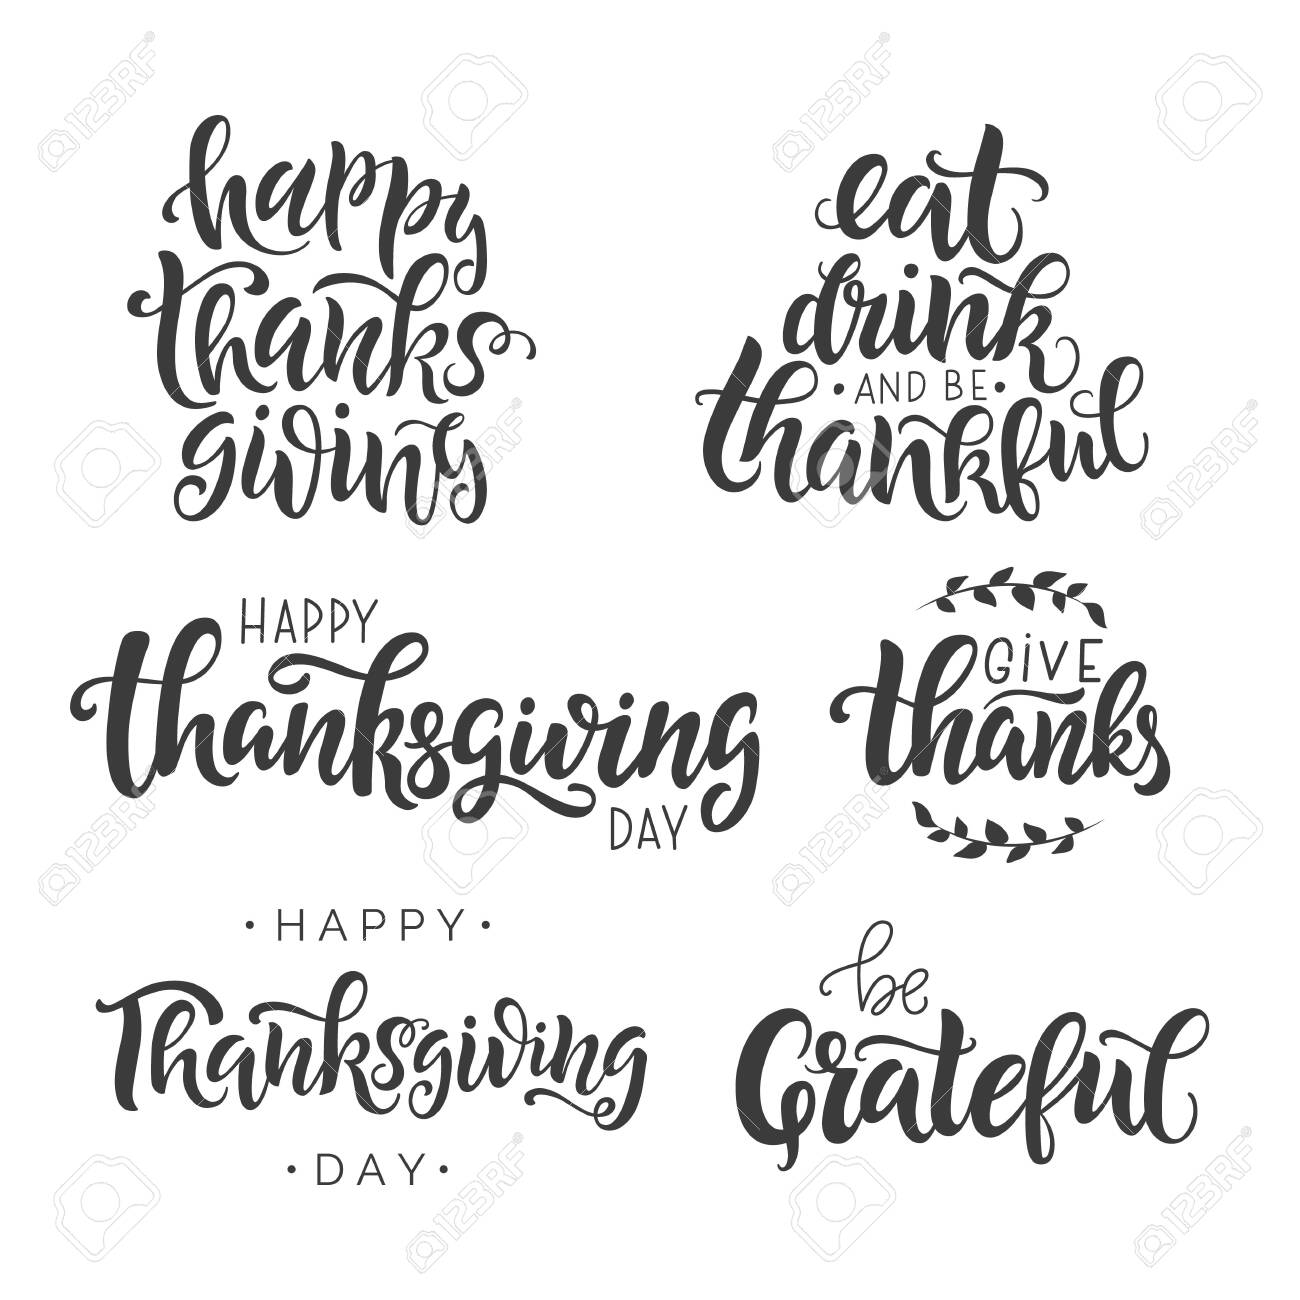 Happy Thanksgiving Day lettering set. Hand written greeting card template for Thanksgiving day. Modern calligraphy, hand lettering inscription. Isolated typography print. Vector illustration. - 131589452